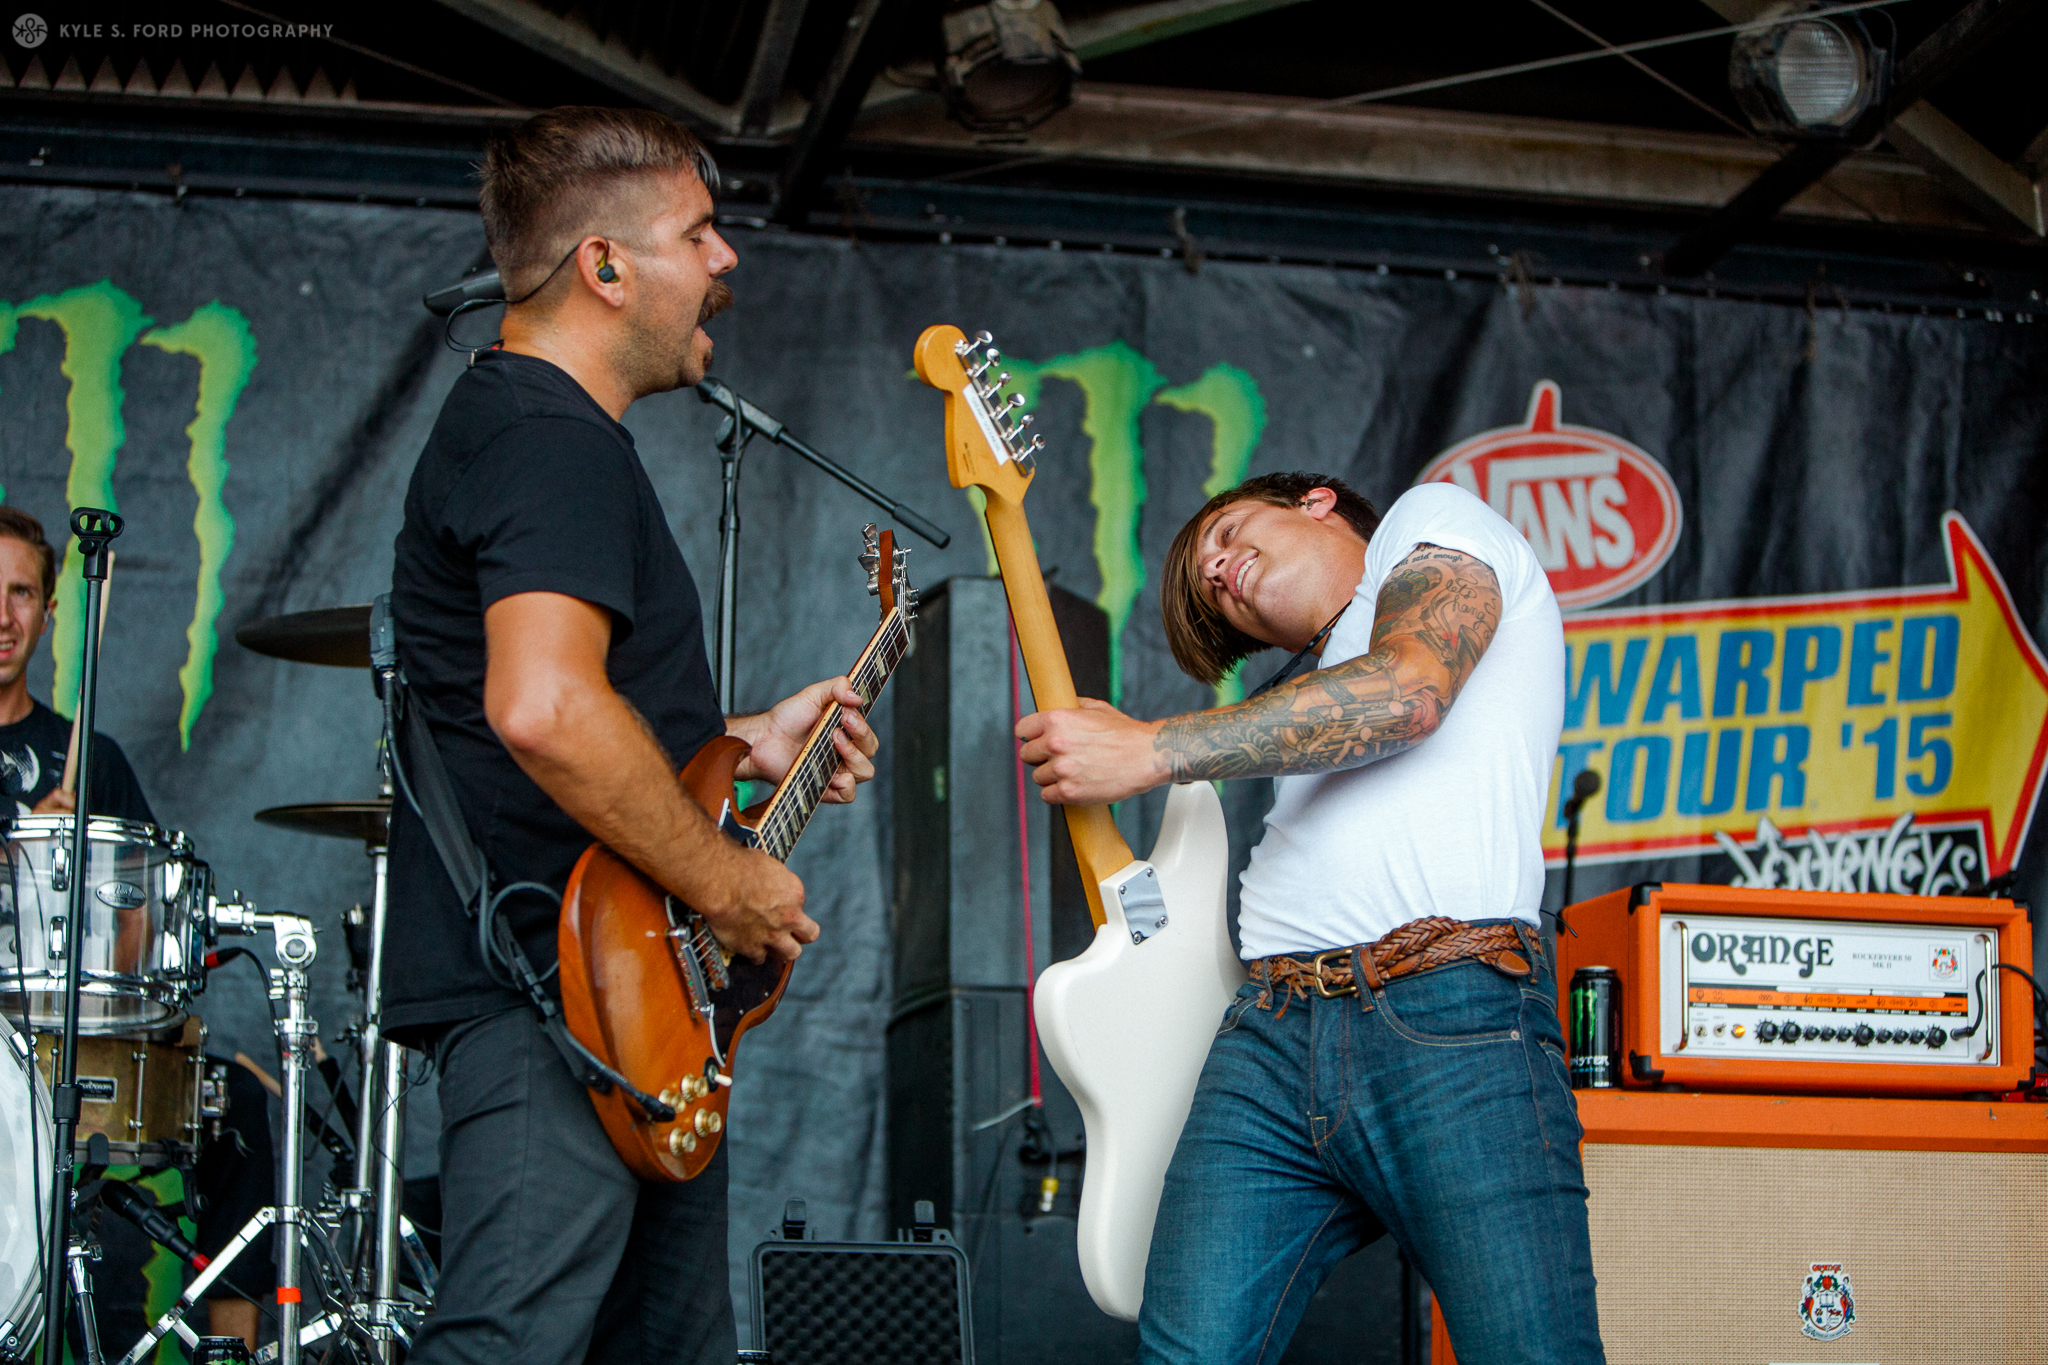 Vans-Warped-Tour-2015-Kyle-Ford_24